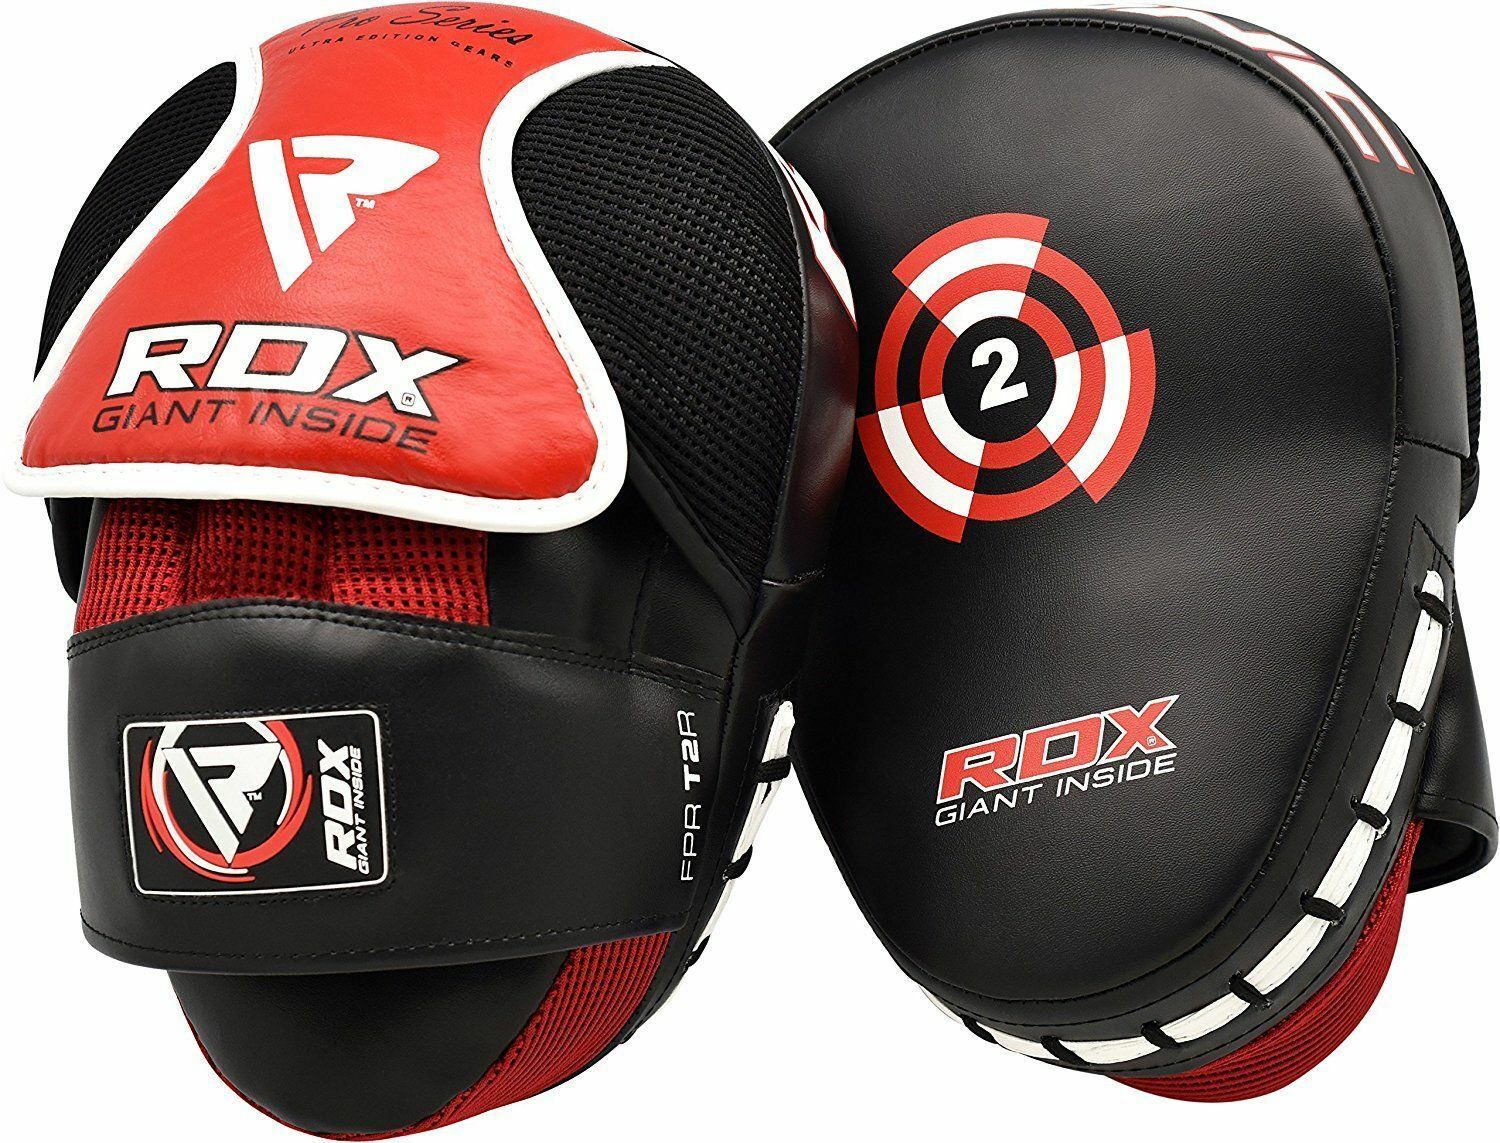 2 x Curved Focus Pads Muay Thai Punch Mitts MMA Training Hook /& Jab Kickboxing